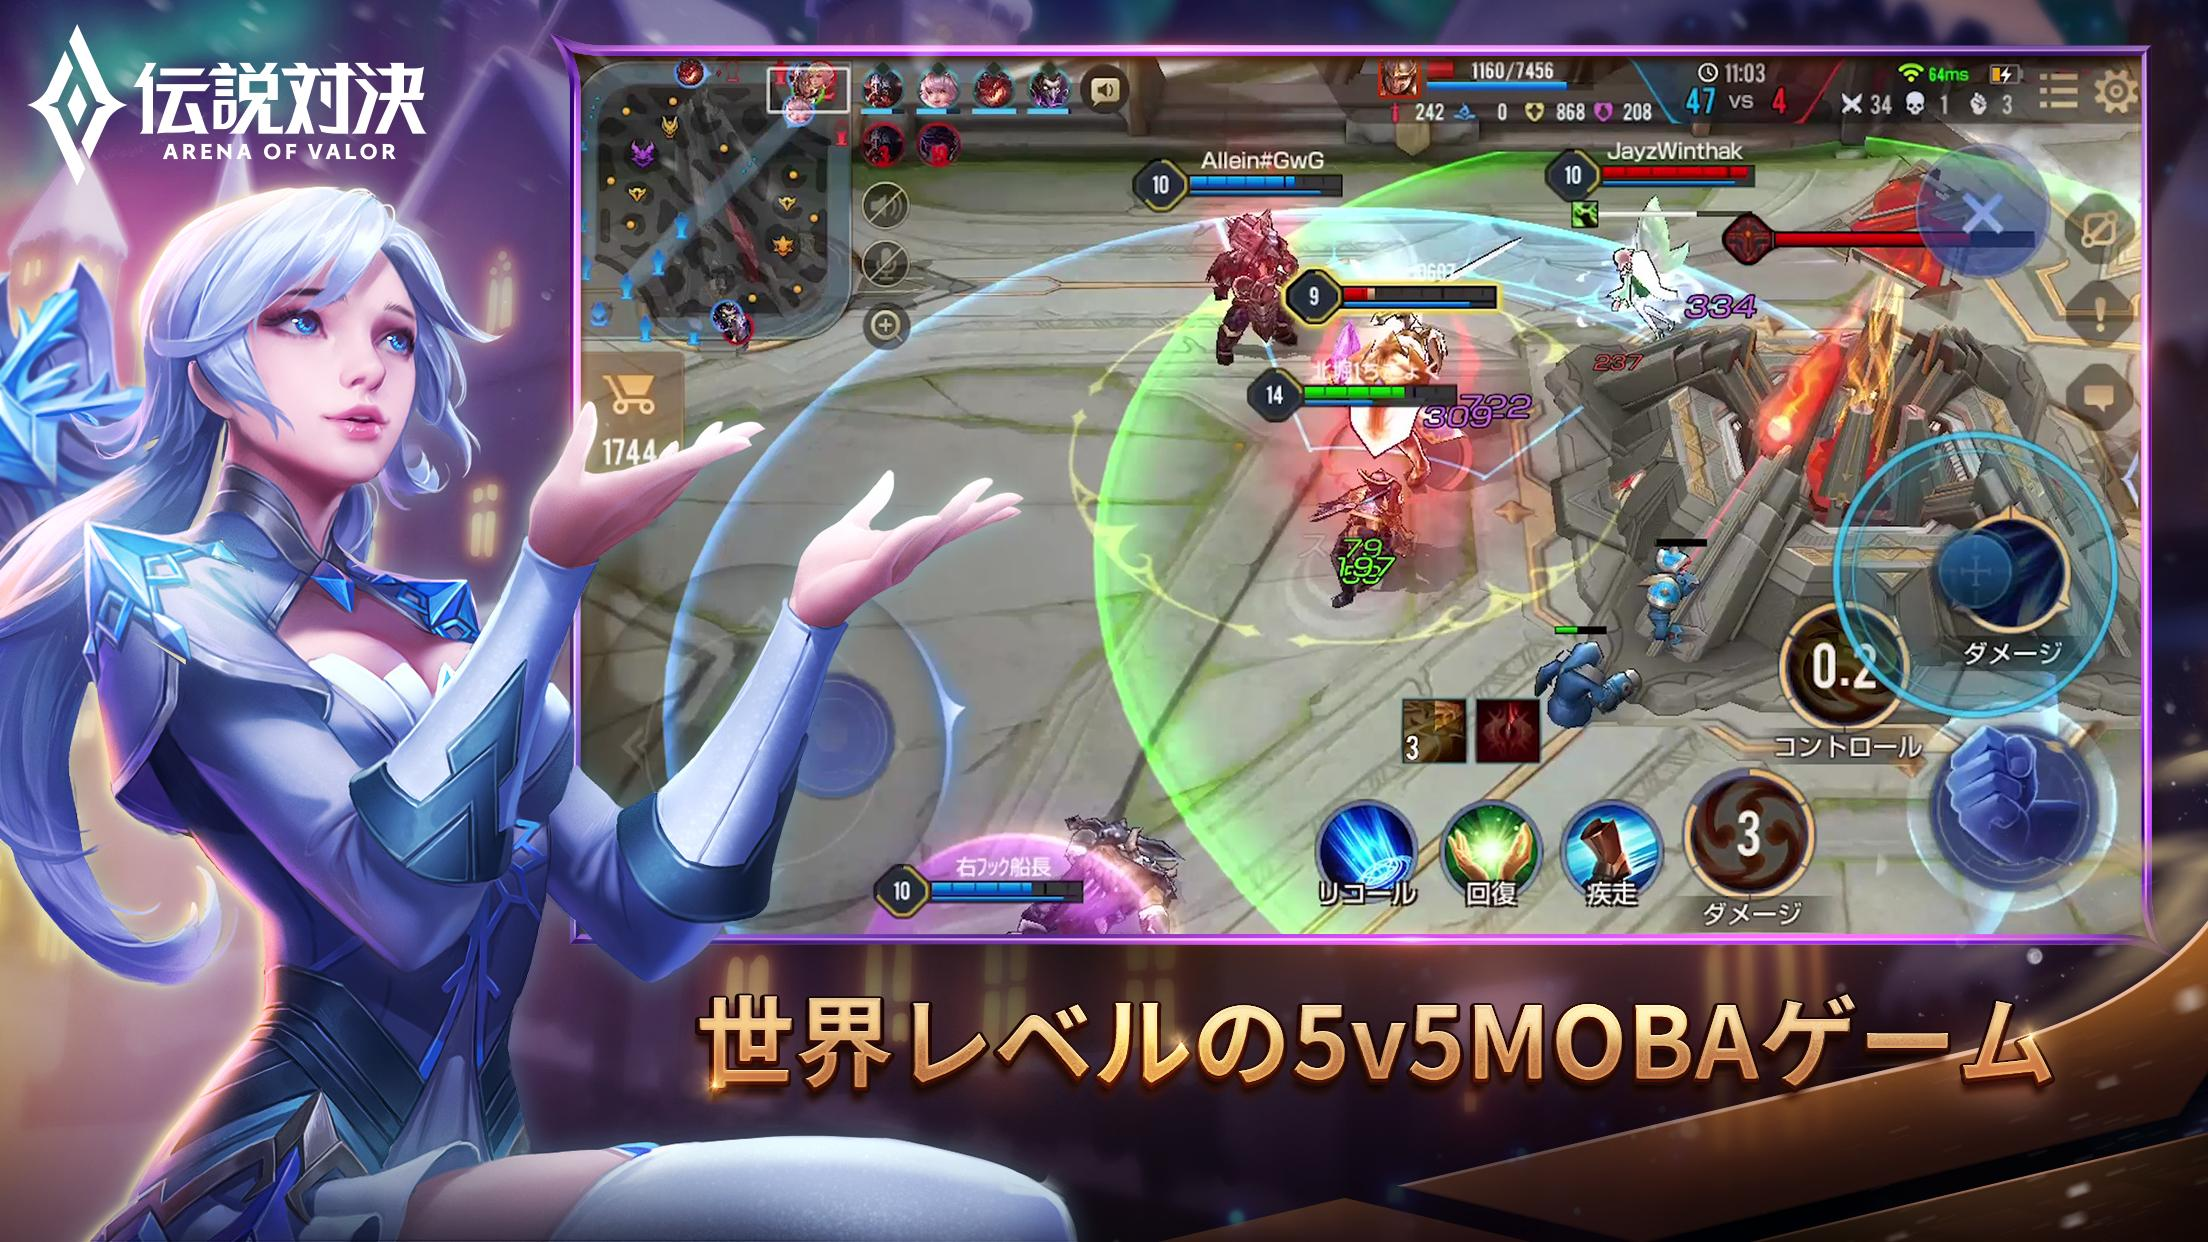 伝説対決 Arena of Valor 1.36.1.8 Screenshot 3